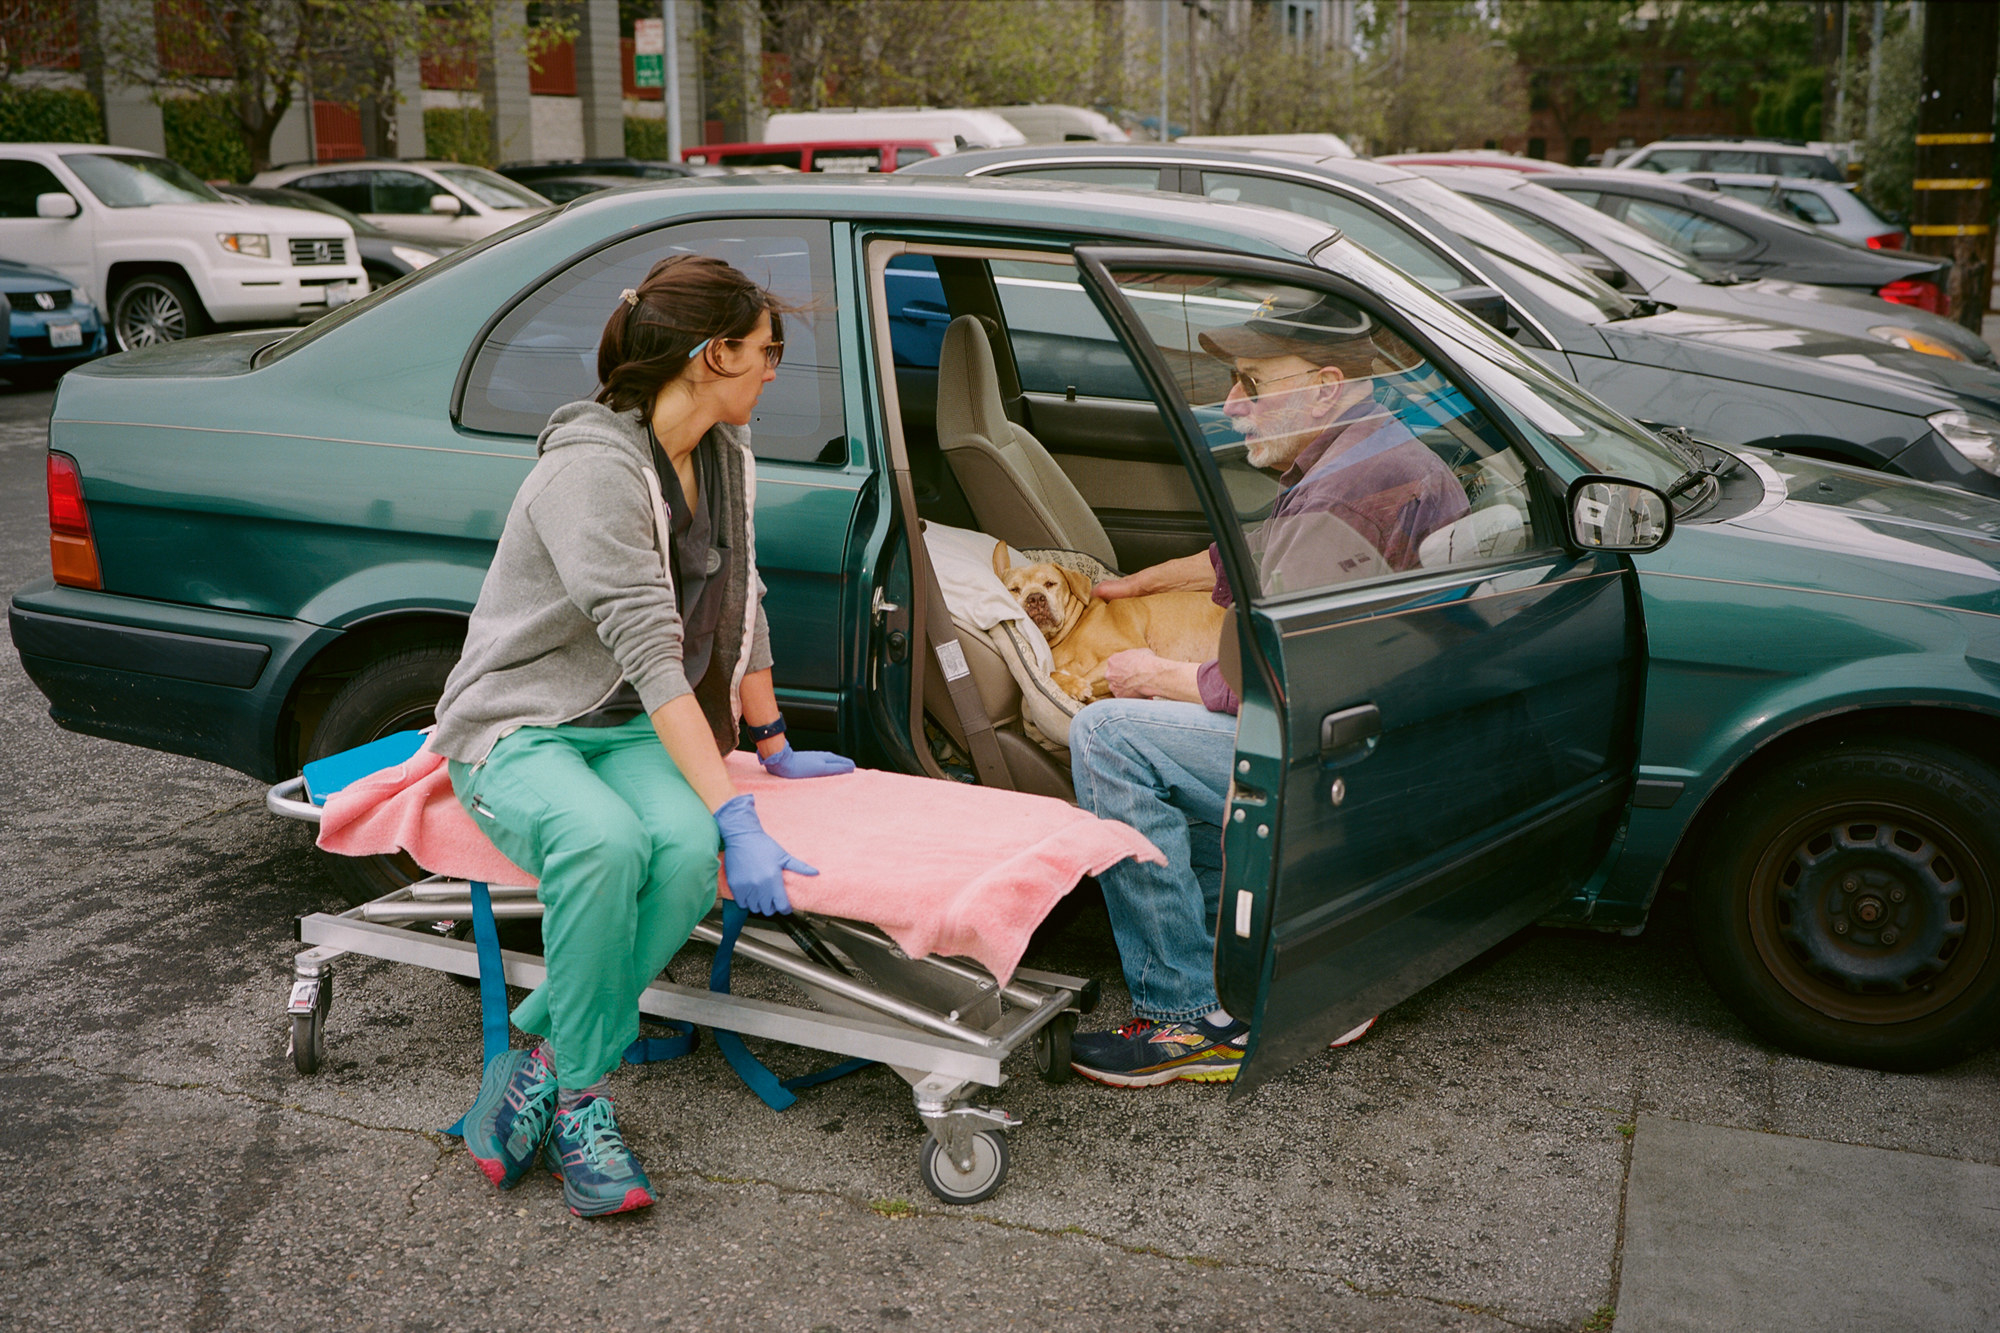 A veterinary nurse sits on a stretcher and talks to an older man who has his dog in the front seat of a car